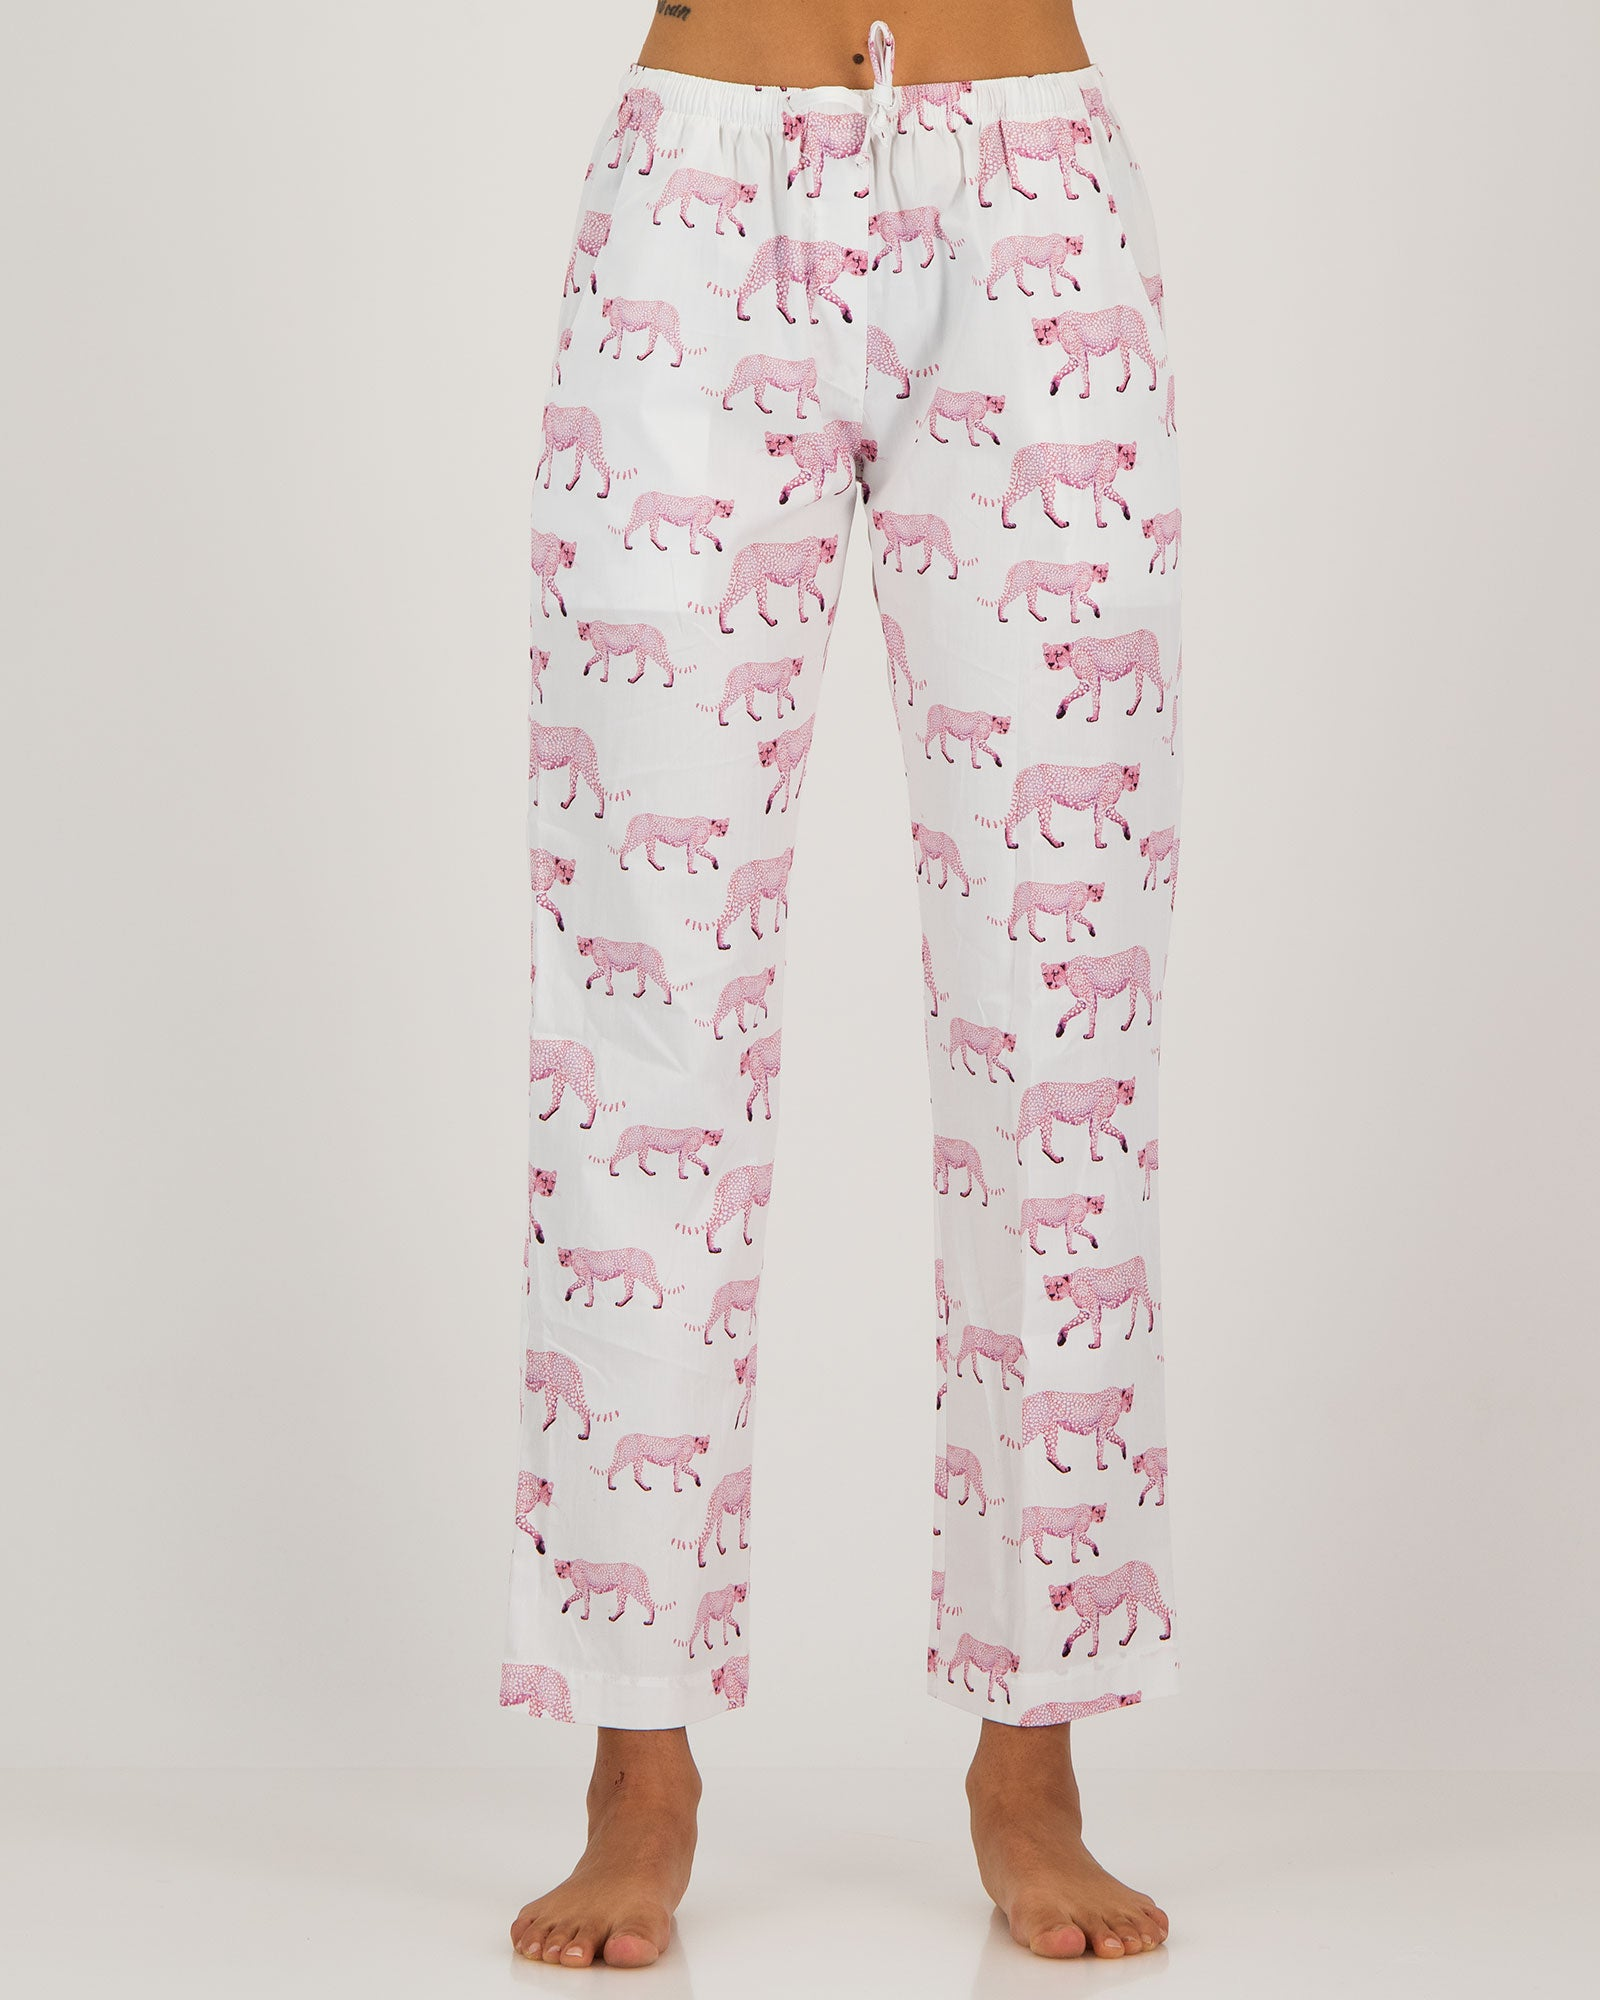 Womens Lounge Pants Pink Cheetahs